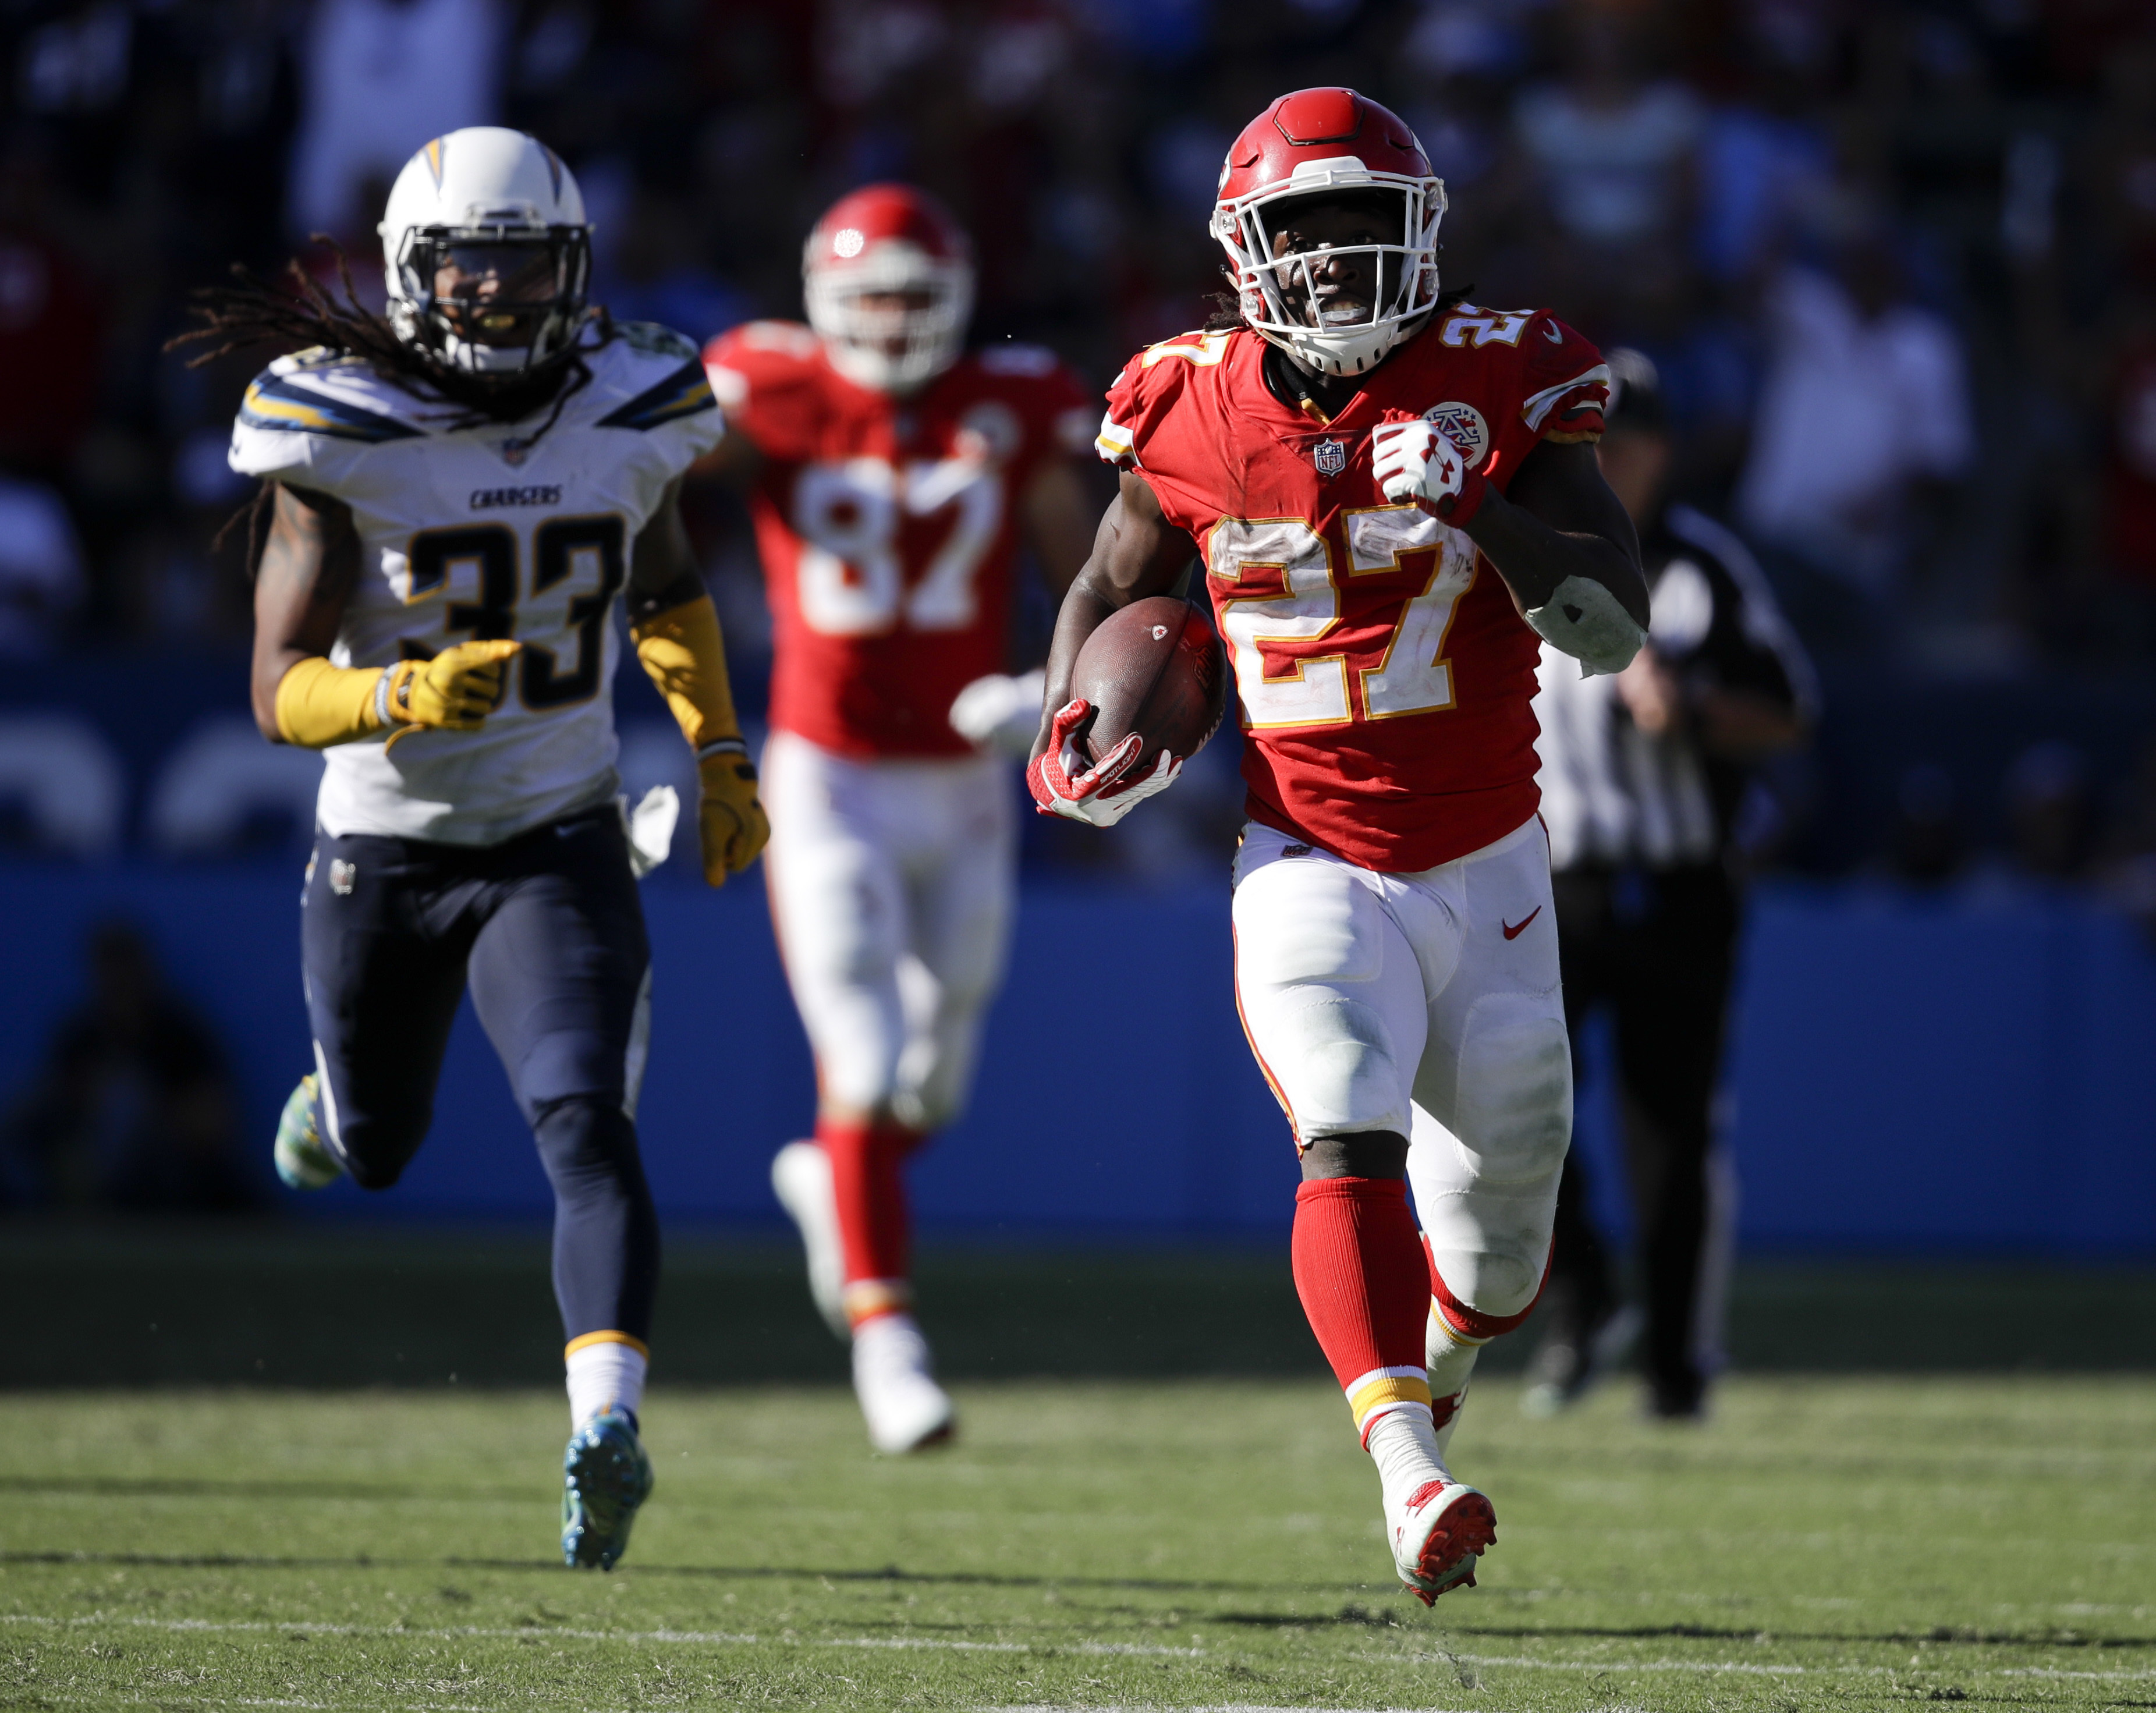 Chiefs running back Kareem Hunt, sprinting in the open field has been a familiar sight for early on this season. (AP Photo/Jae C. Hong)